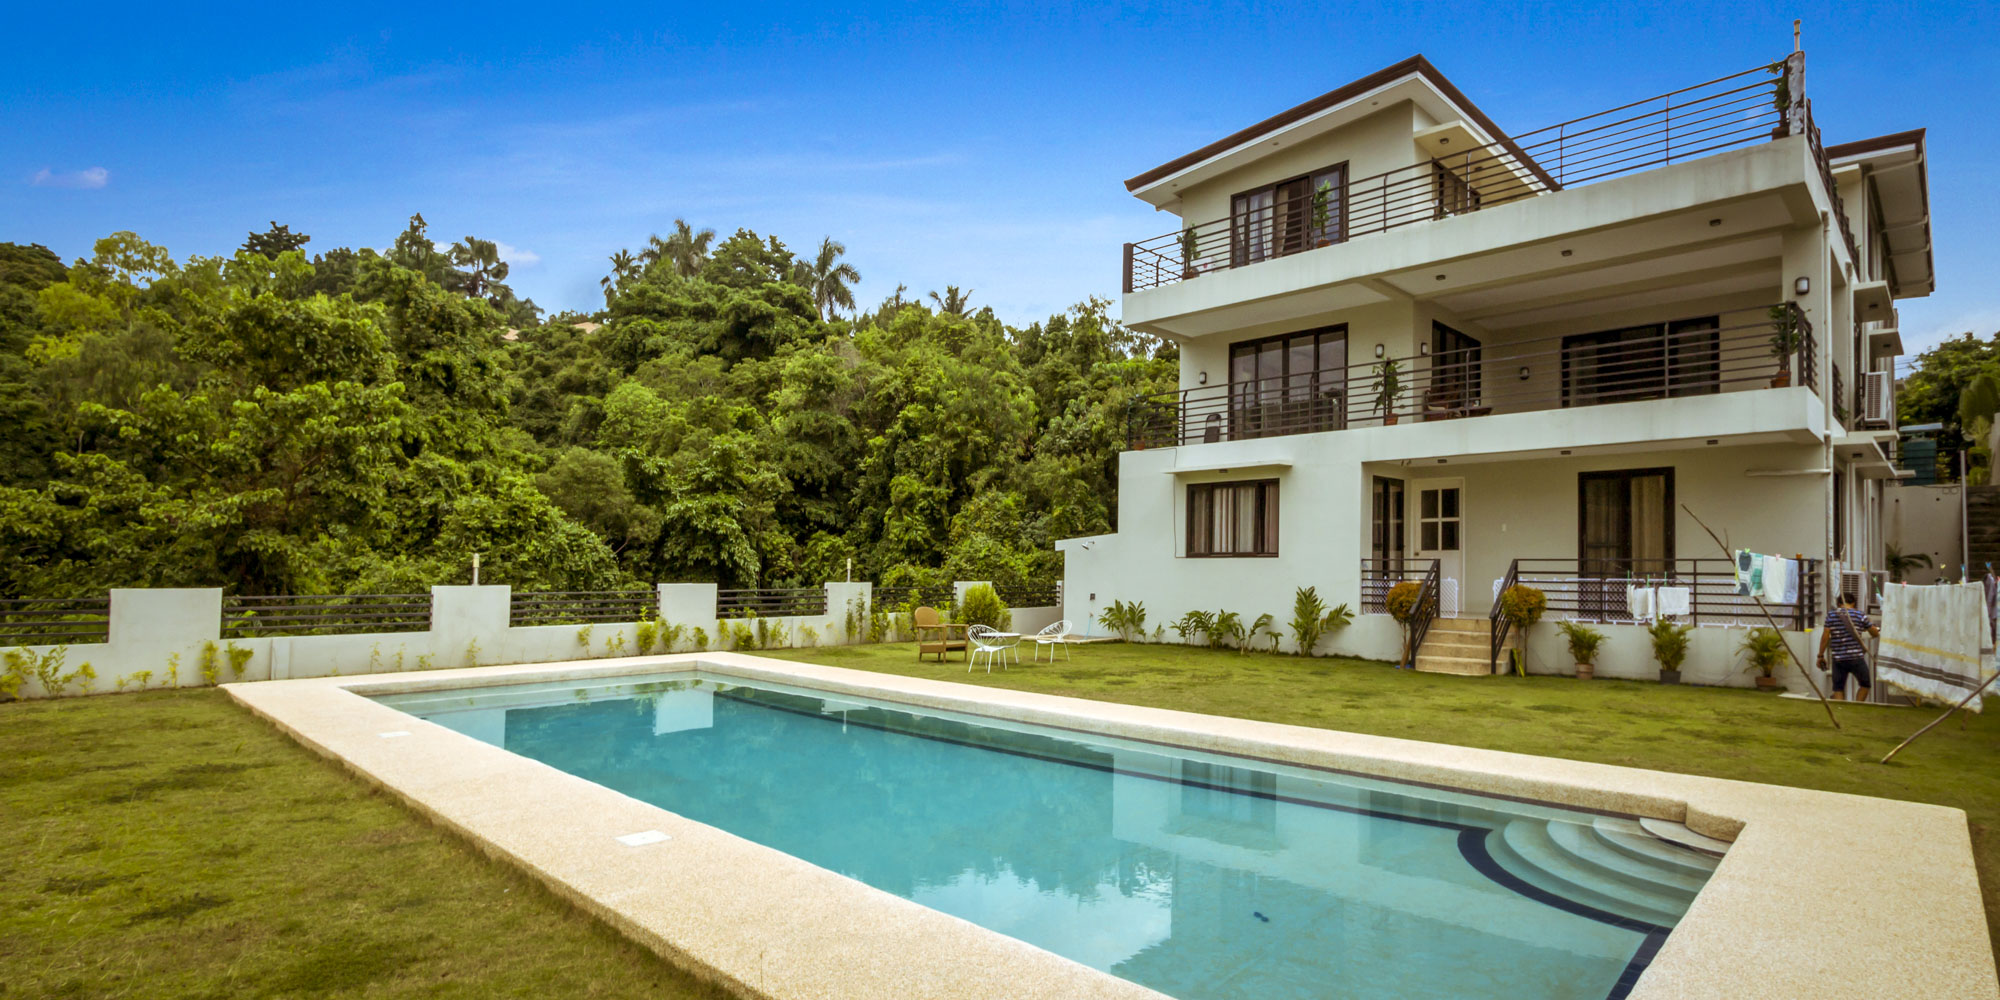 9 Bedroom House with Ocean View for Sale in Maria Luisa Park.